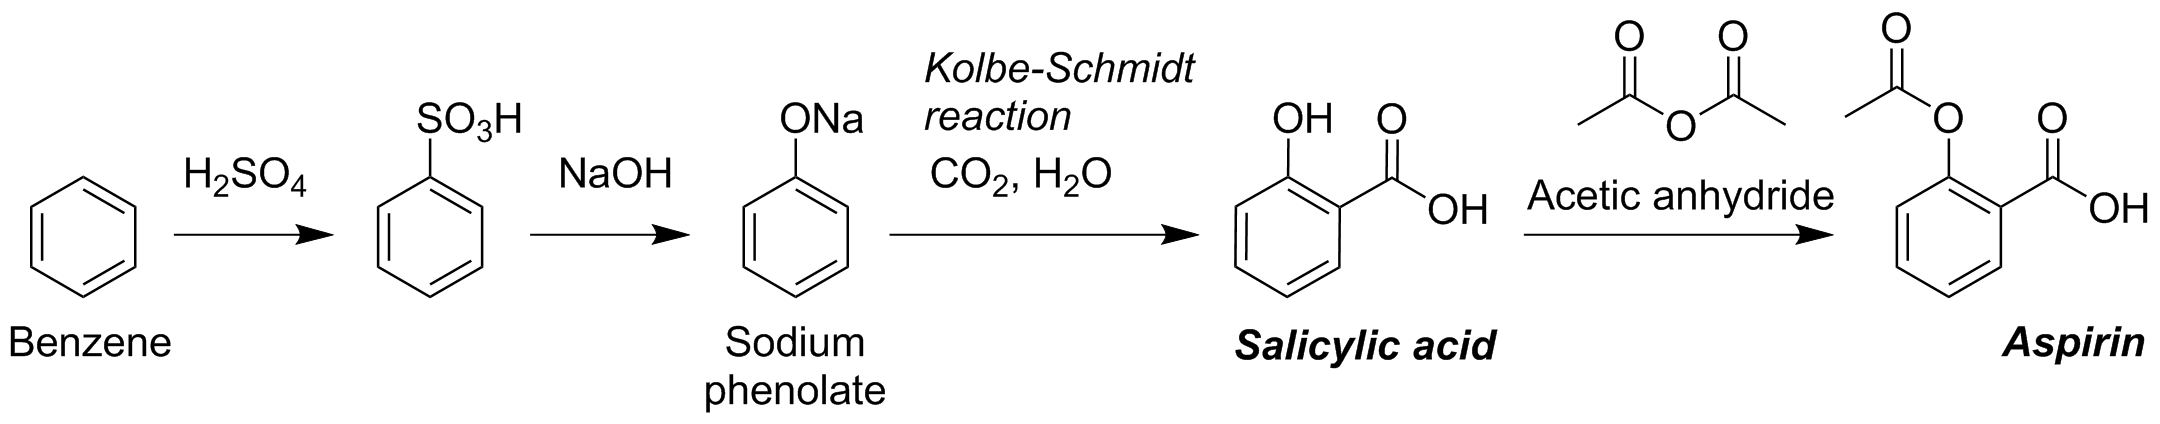 synthesis of aspirin 83 experiment 5: synthesis of aspirin salicylic acid has the same analgesic properties as aspirin and was used for many years as a headache medicine.